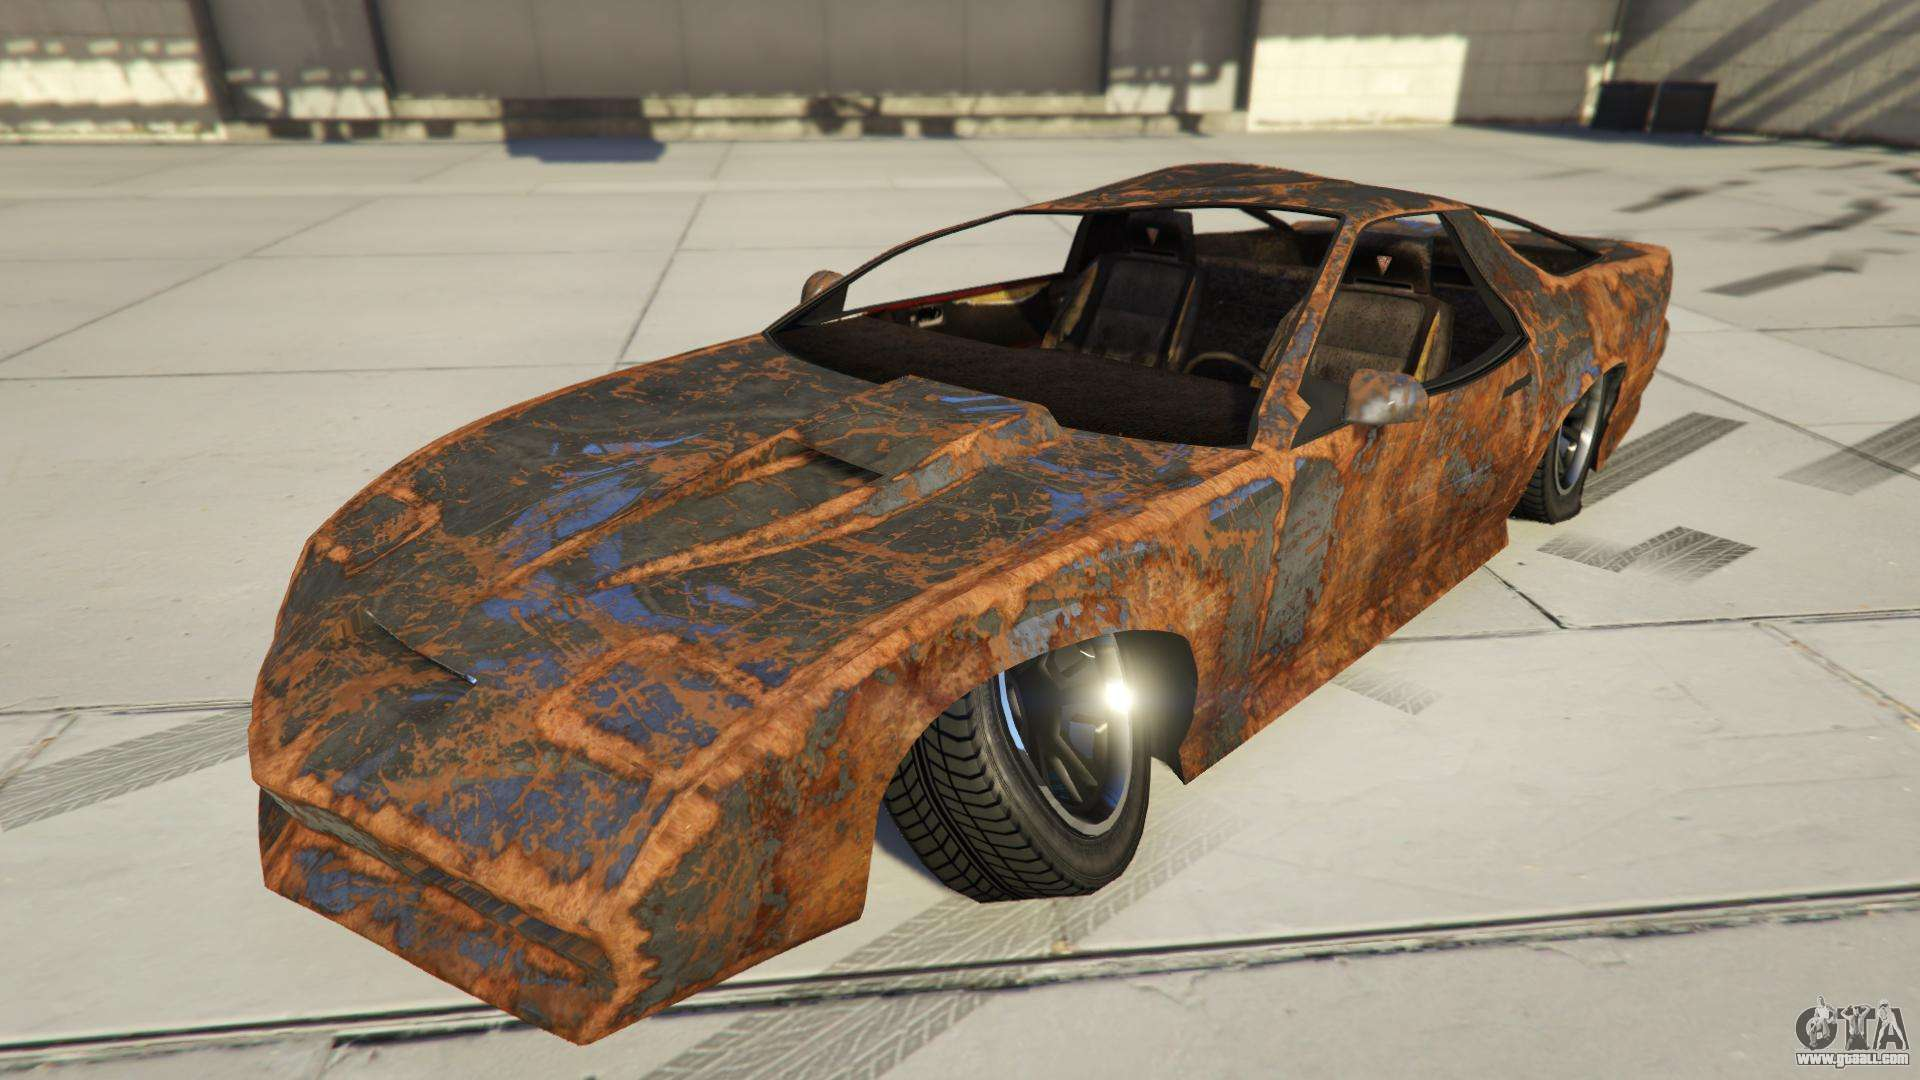 imponte ruiner rusty from gta online characteristics description and screenshots. Black Bedroom Furniture Sets. Home Design Ideas